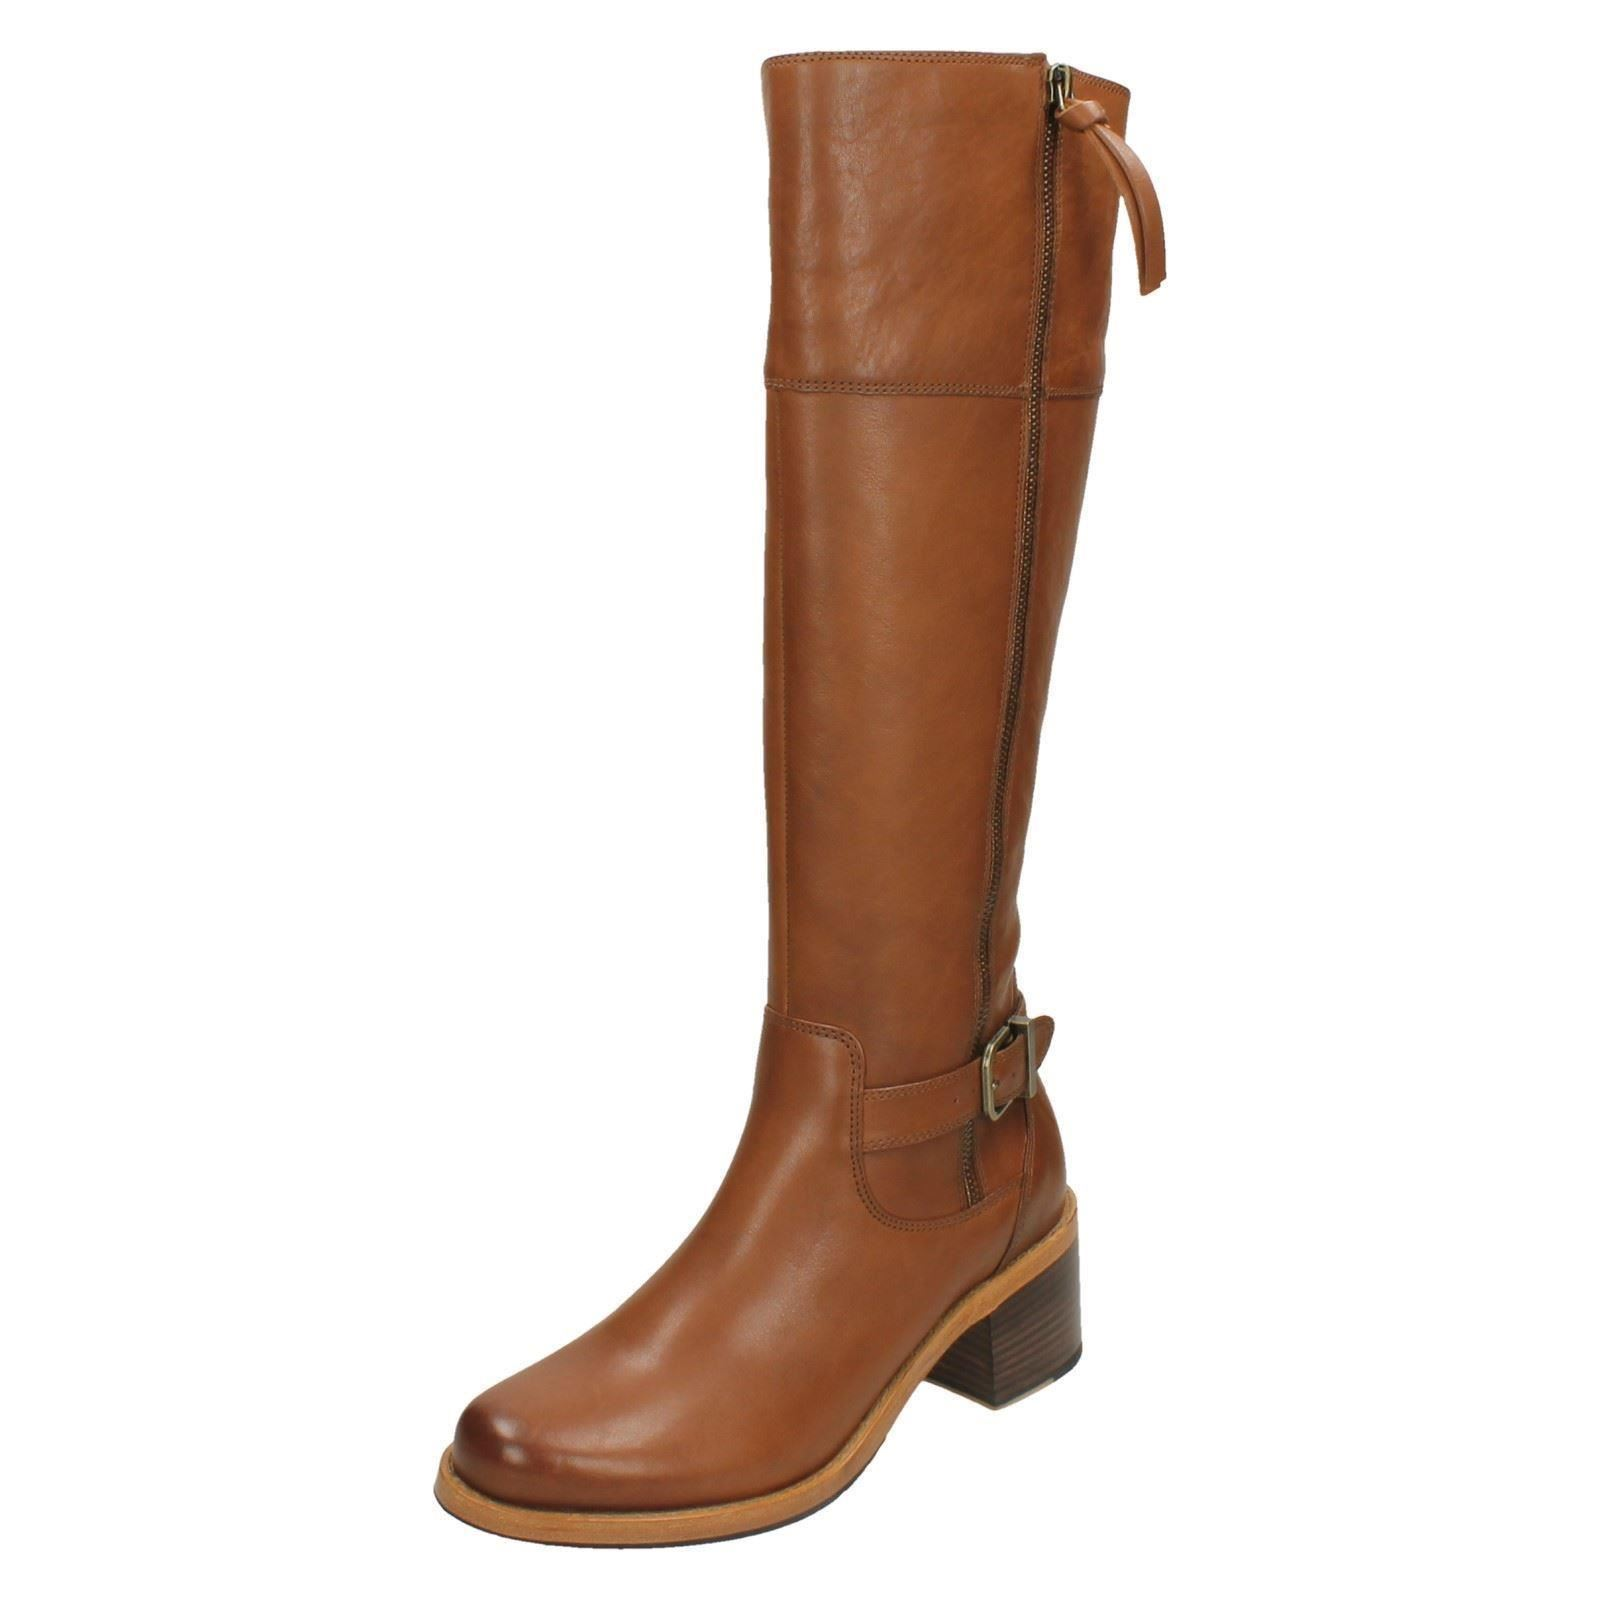 Boots Leather Knee Sona Tan Clarkdale Clarks Style High Dark Ladies Heeled fIxBXqpwWH